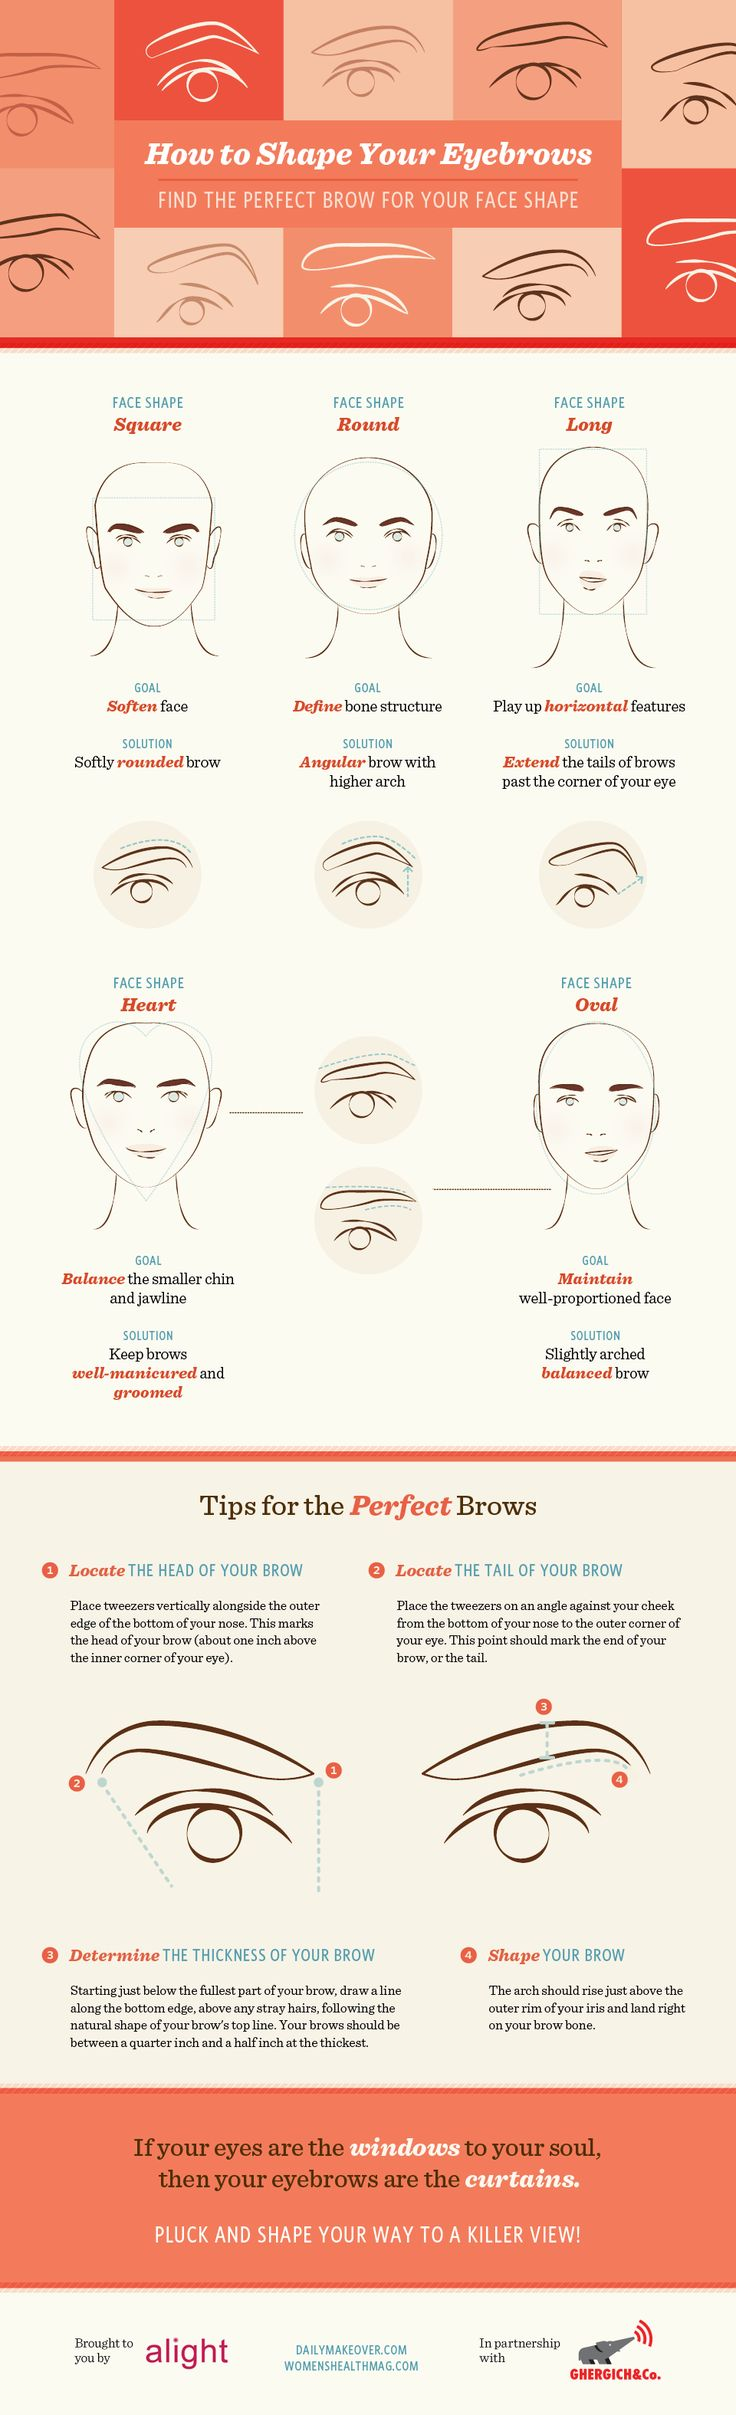 How to Shape Your Eyebrows for your face shape